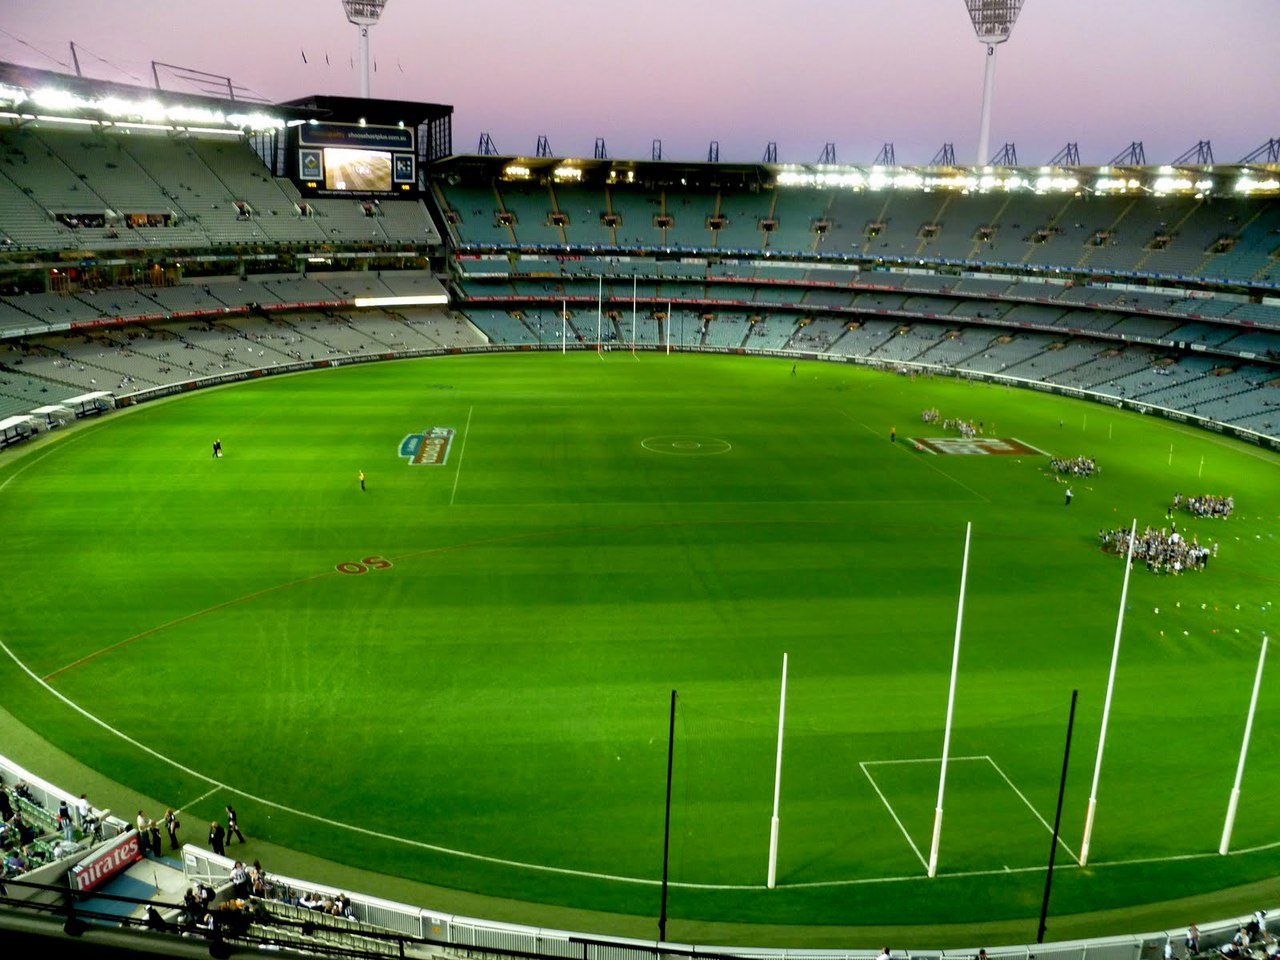 aussie rules field